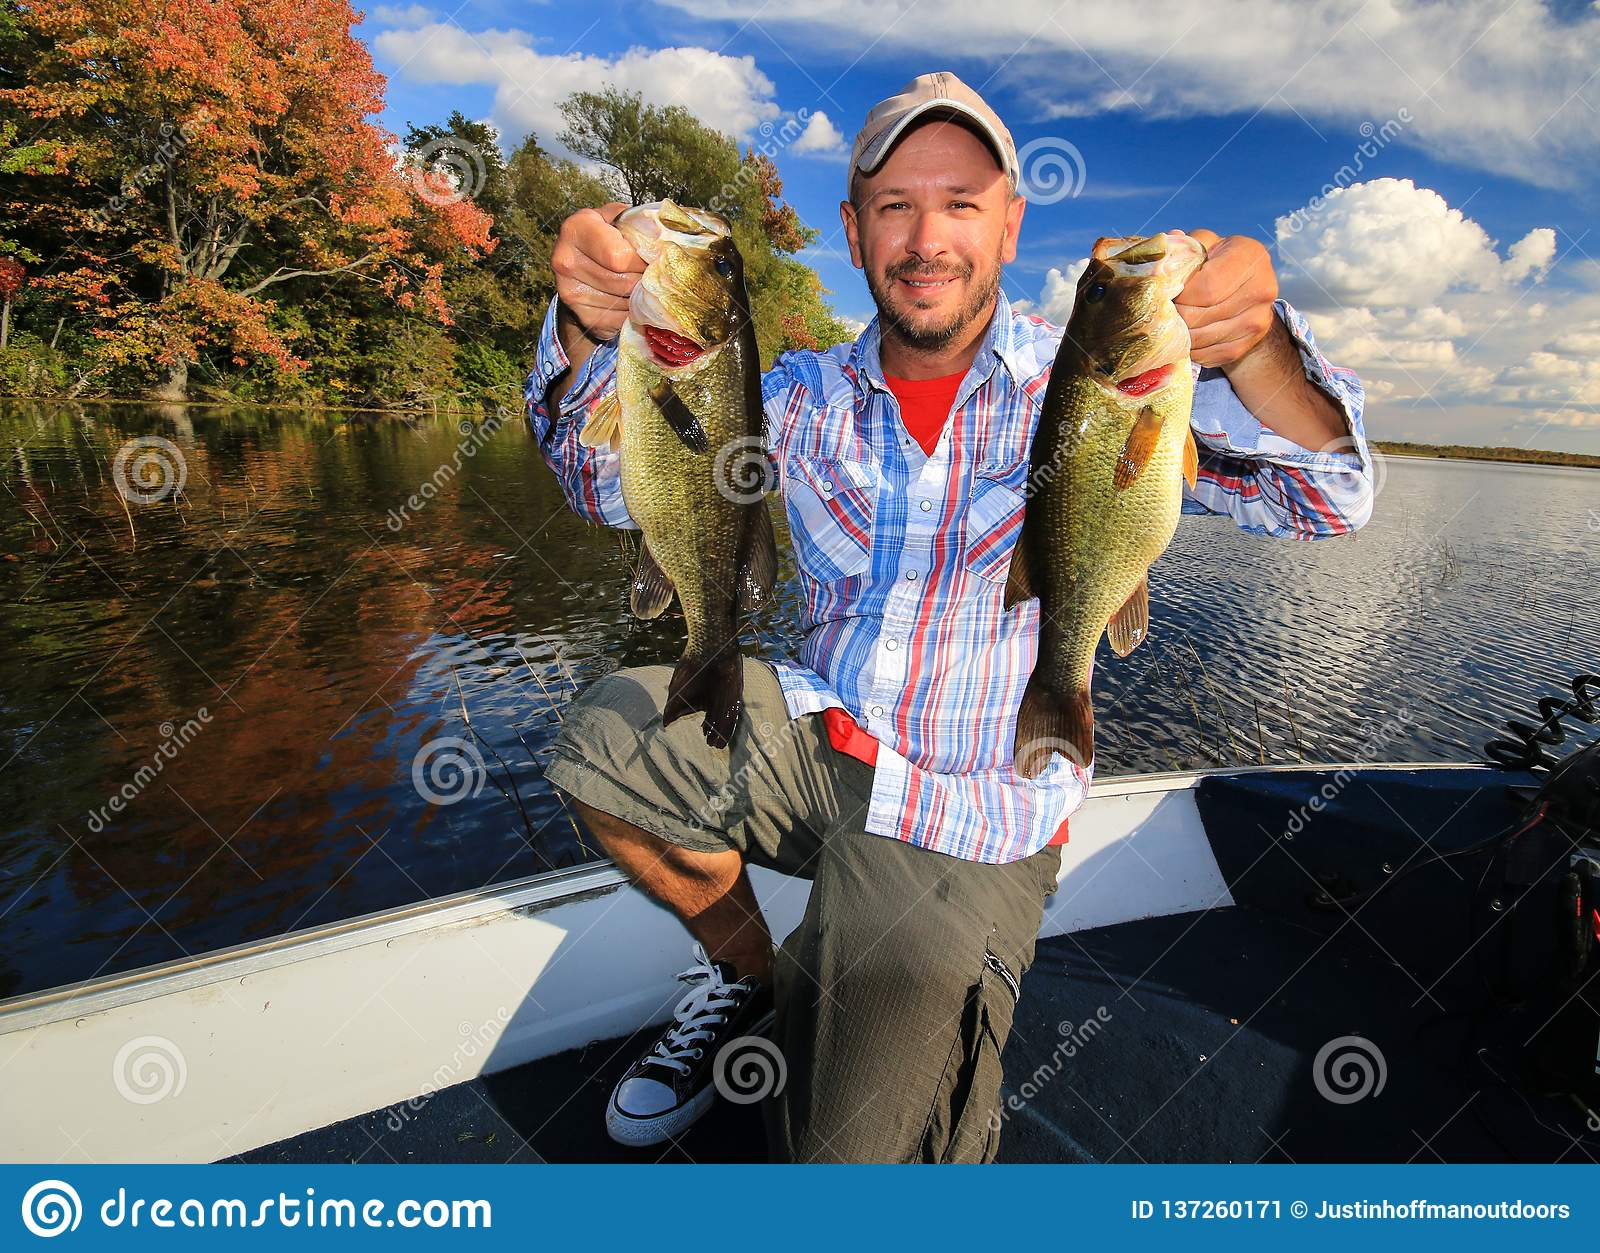 Man Fishing Large Mouth Largemouth Bass in Fall